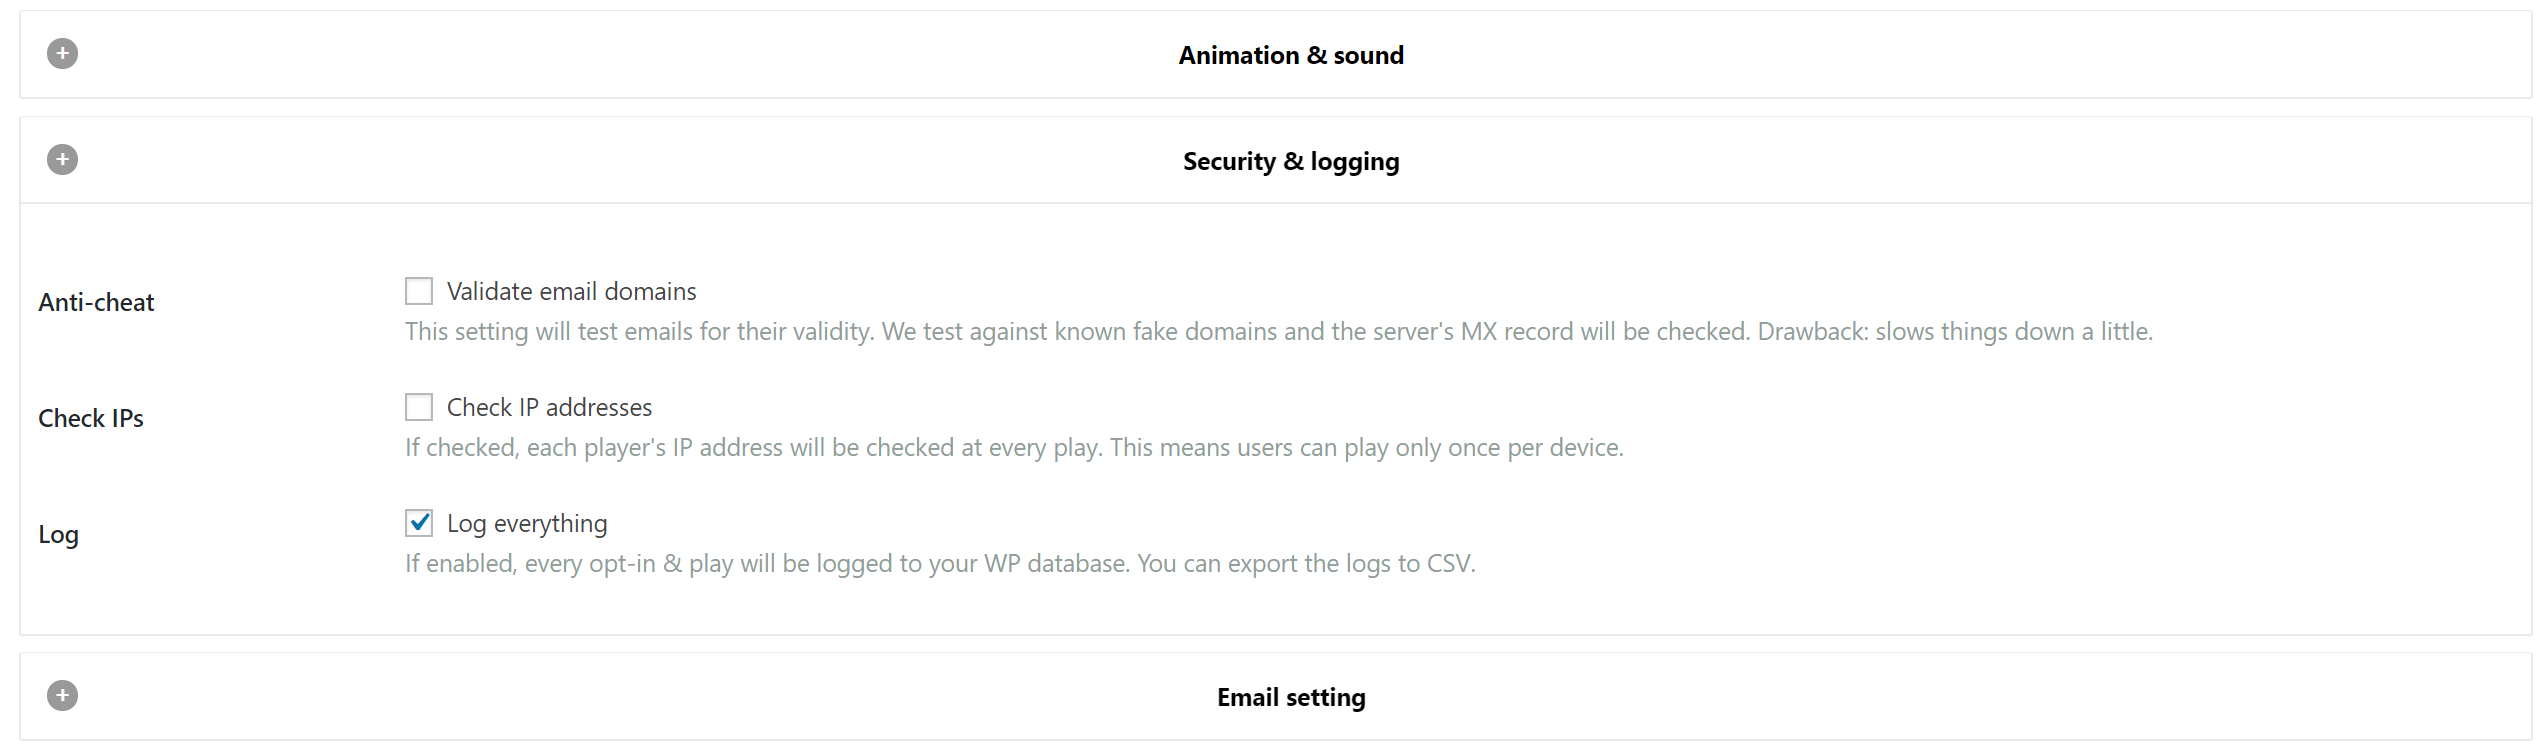 Log everything setting in WP Optin Wheel